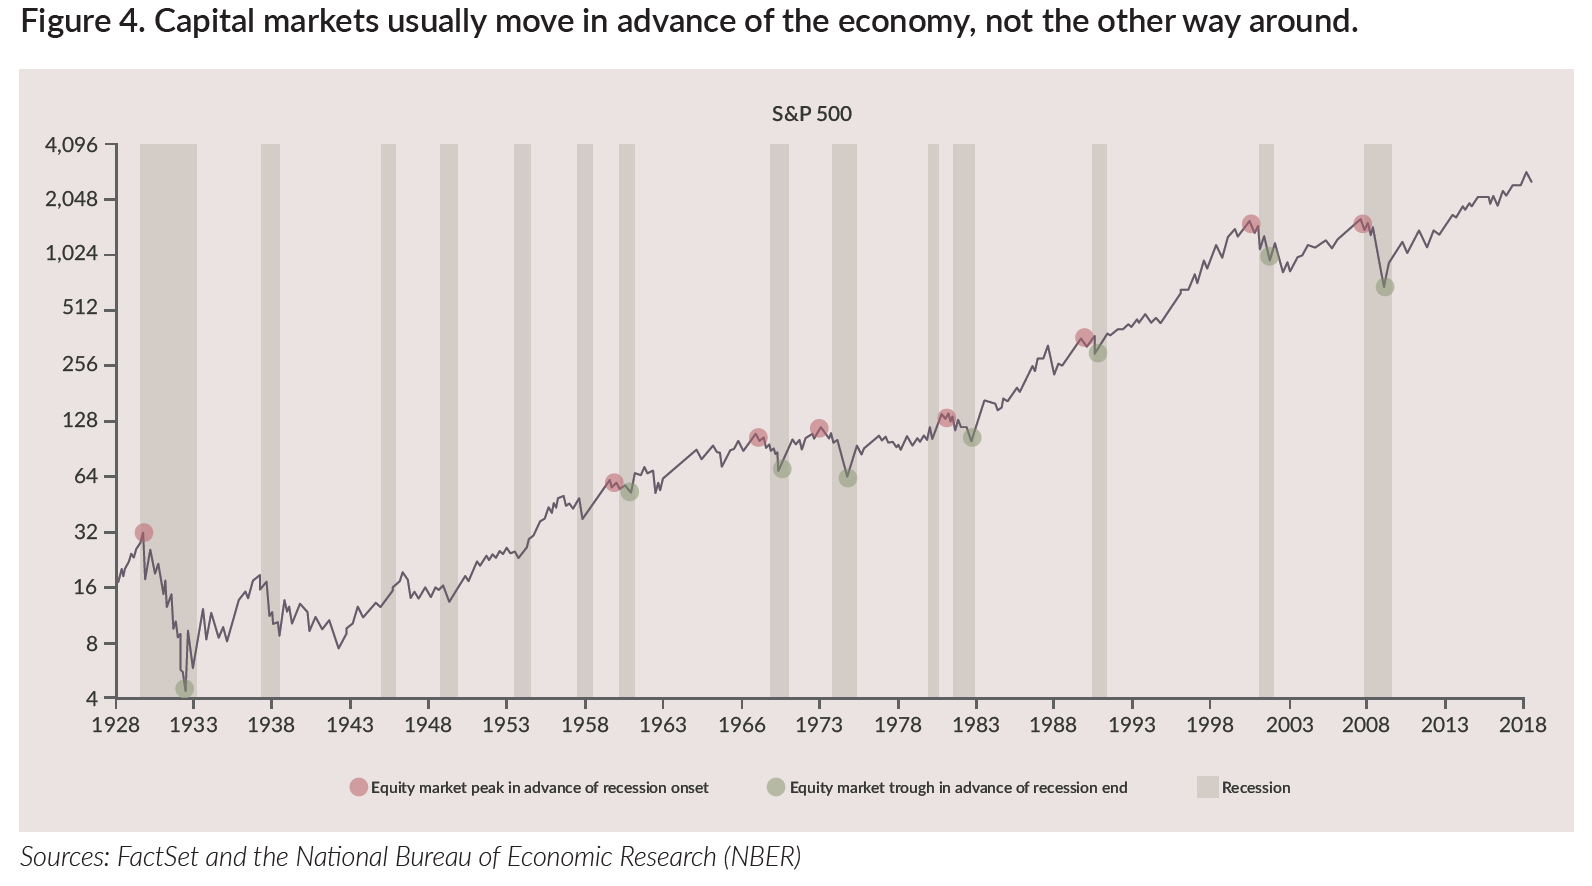 Capital markets move in advance of the economy, not the other way around.